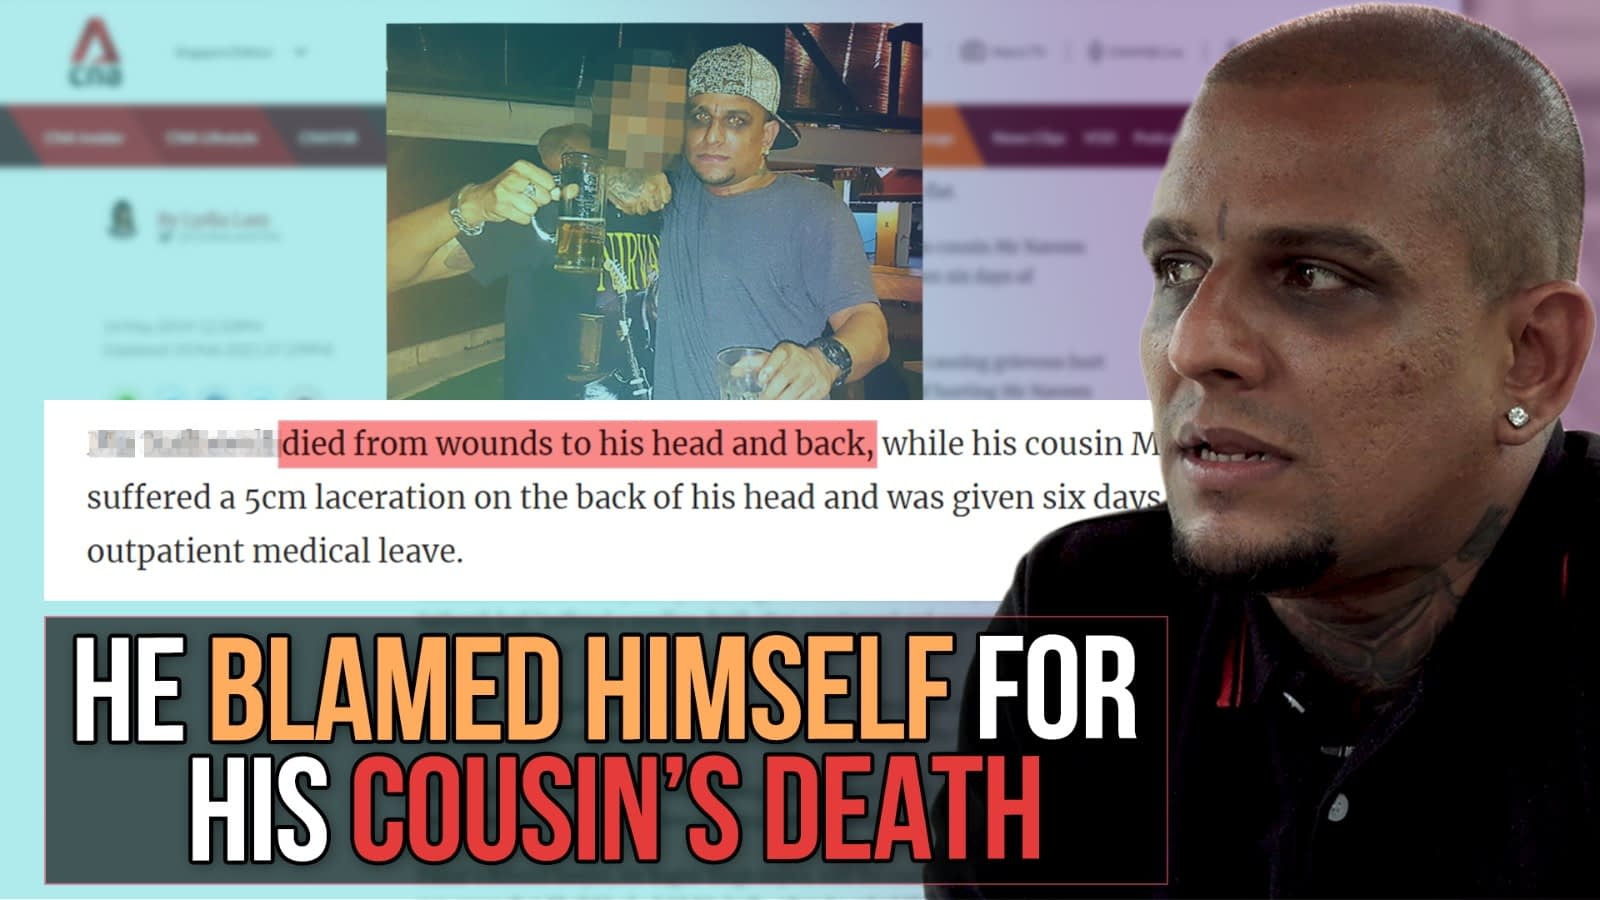 He blamed himself for his cousin's death